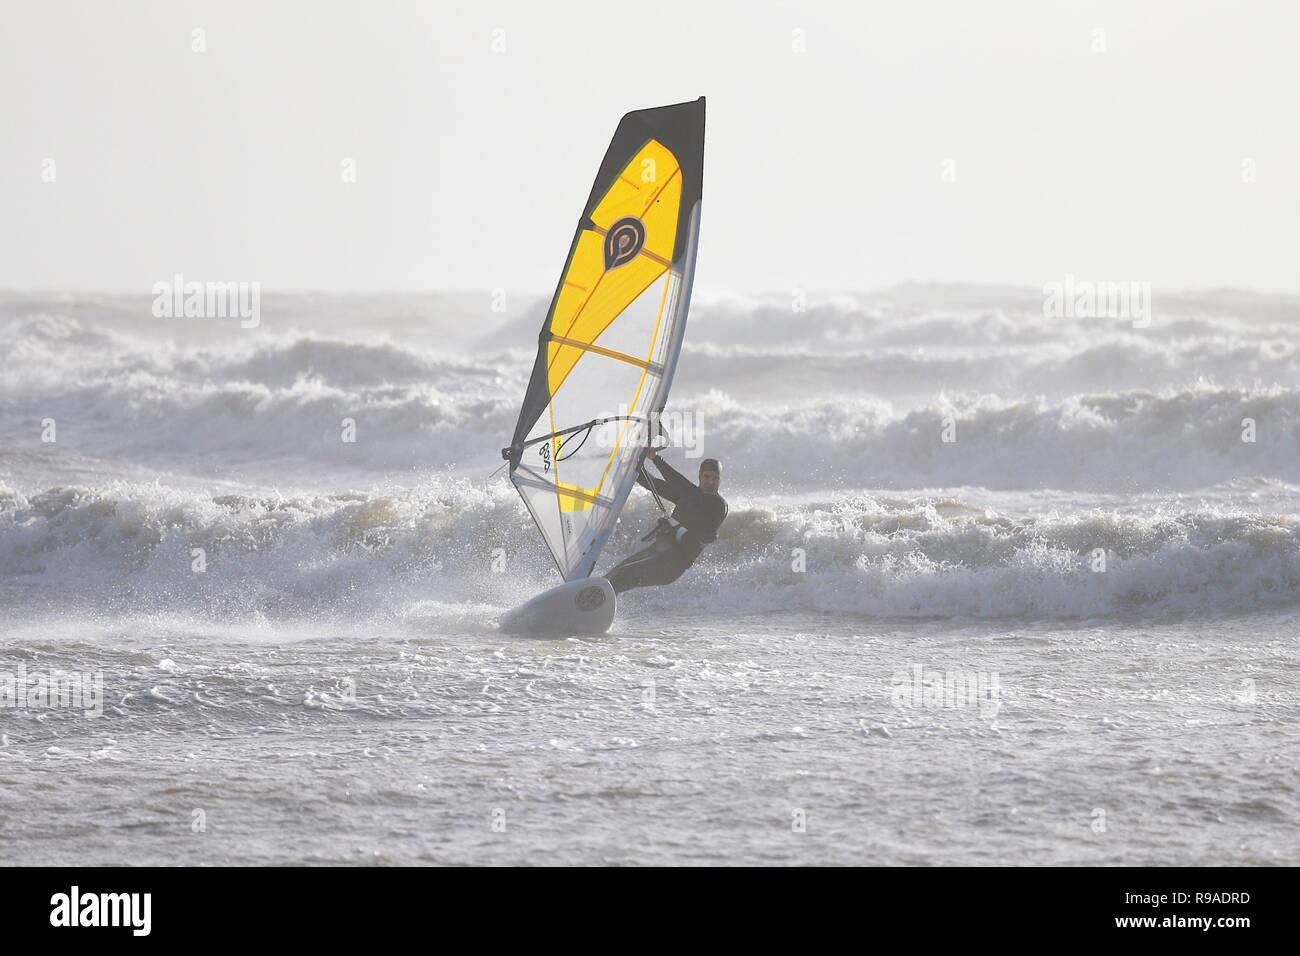 Camber, East Sussex, UK. 21st Dec, 2018. UK Weather: These kite surfers make the most of the ideal conditions to kite surf with gale force winds exceeding 40mph. This wind surfer gets a piece of the action as well. © Paul Lawrenson 2018, Photo Credit: Paul Lawrenson/ Alamy Live NewsStock Photo